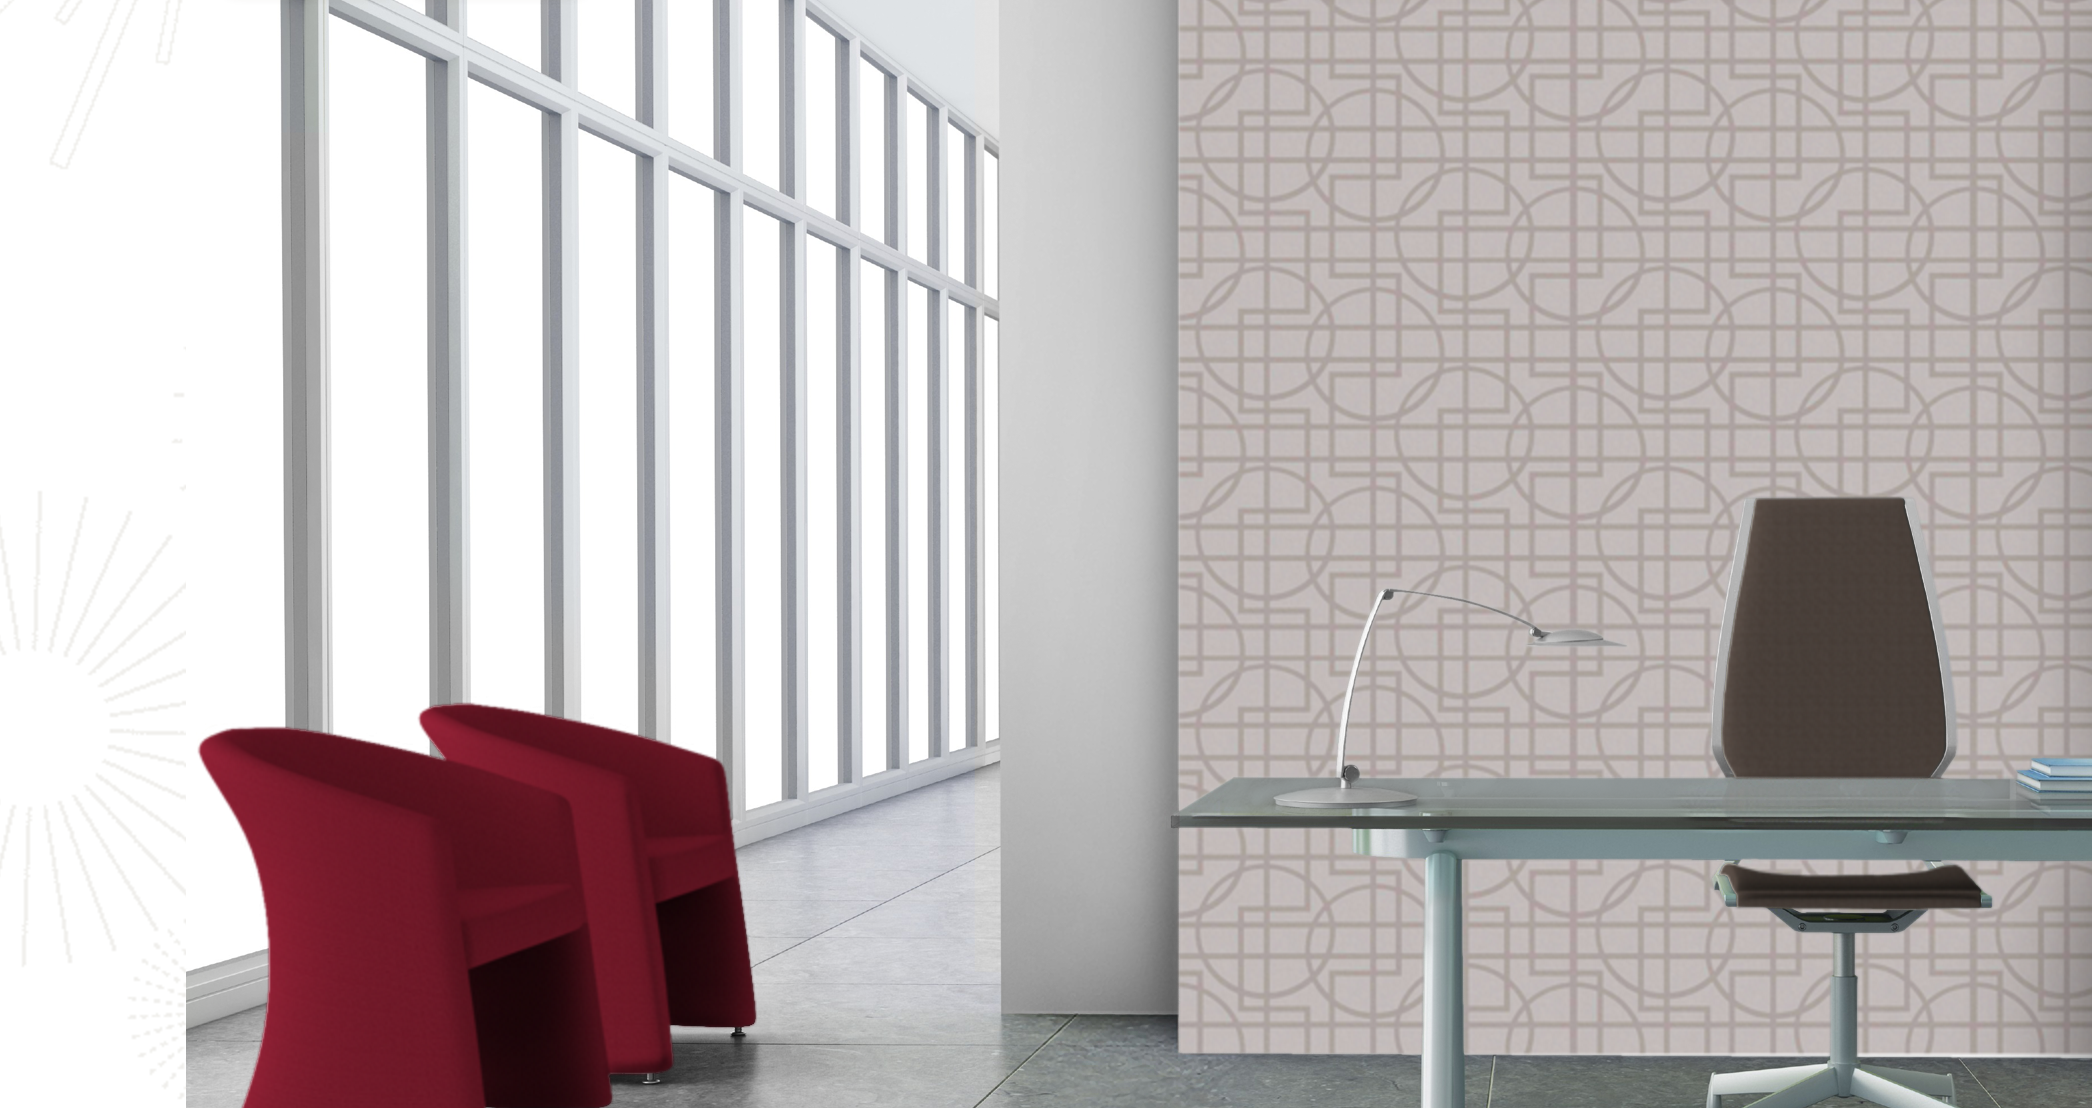 Reception Wall:  2/3 Height Vinyl Wallcovering (Tri-Kes China Fret, Fedora) with paint below